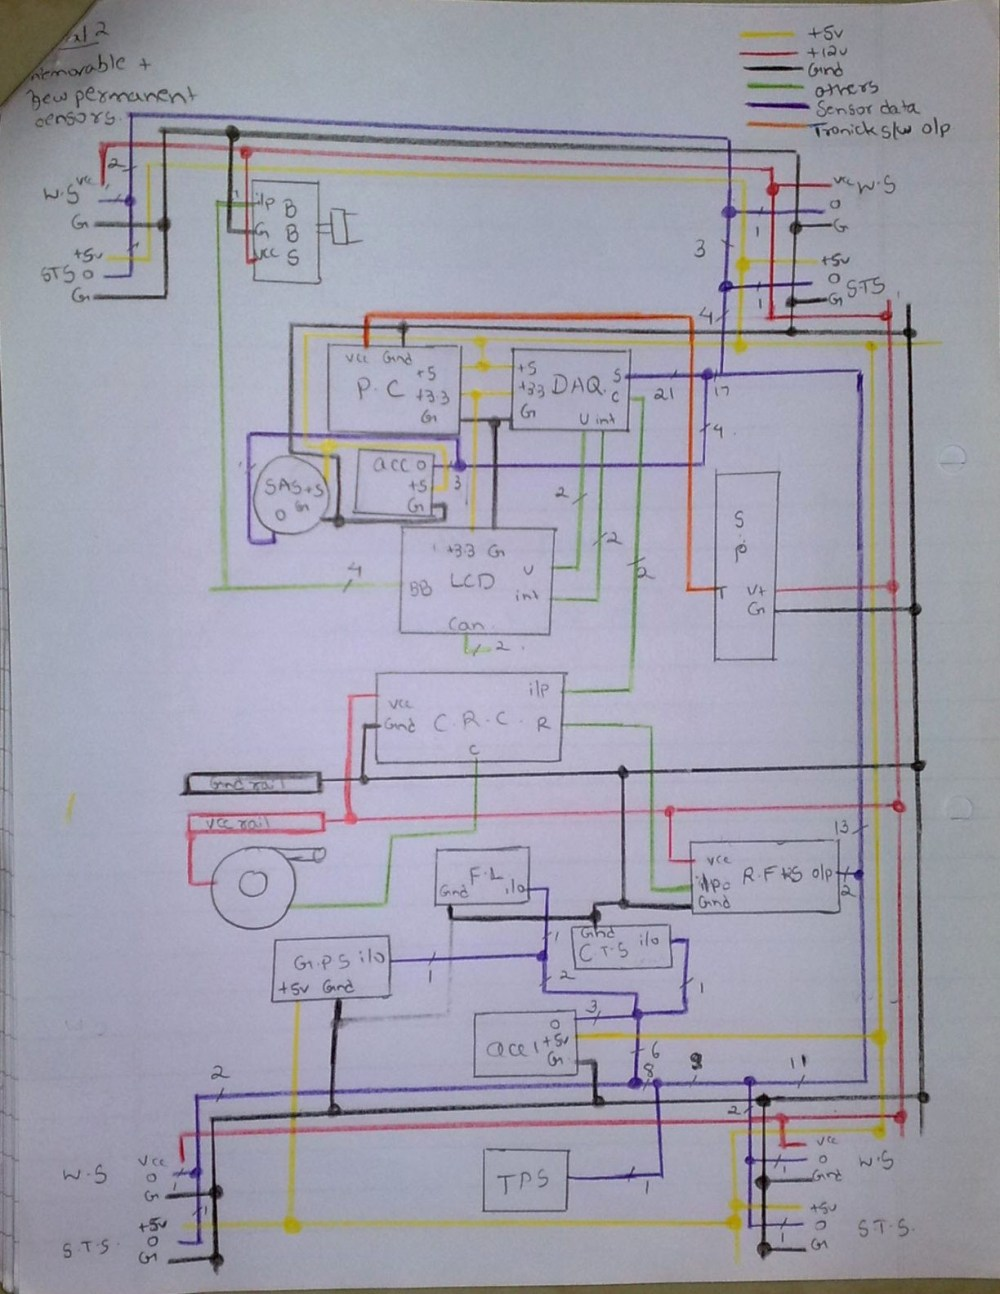 medium resolution of drag race car wiring diagram marine battery disconnect switch wiring diagram and forum discussion